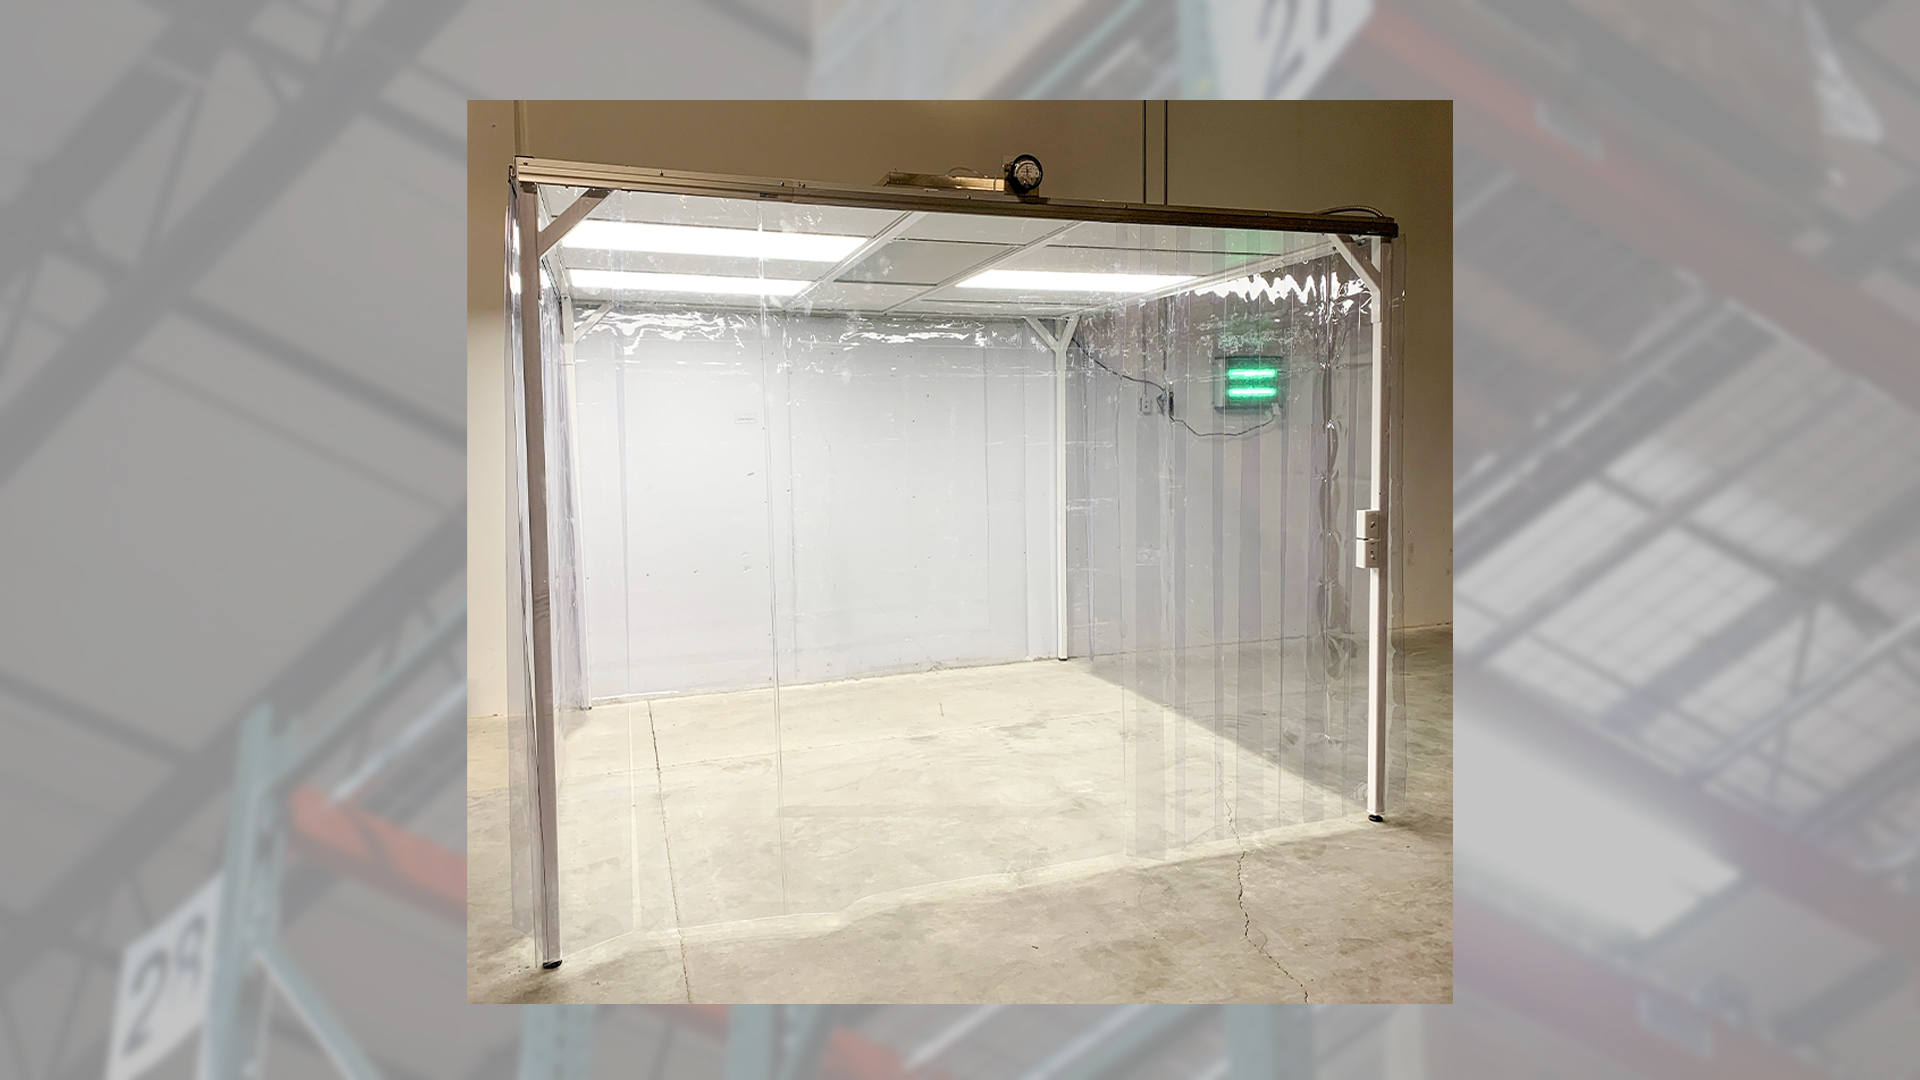 sample booth in warehouse facility made for testing of API materials